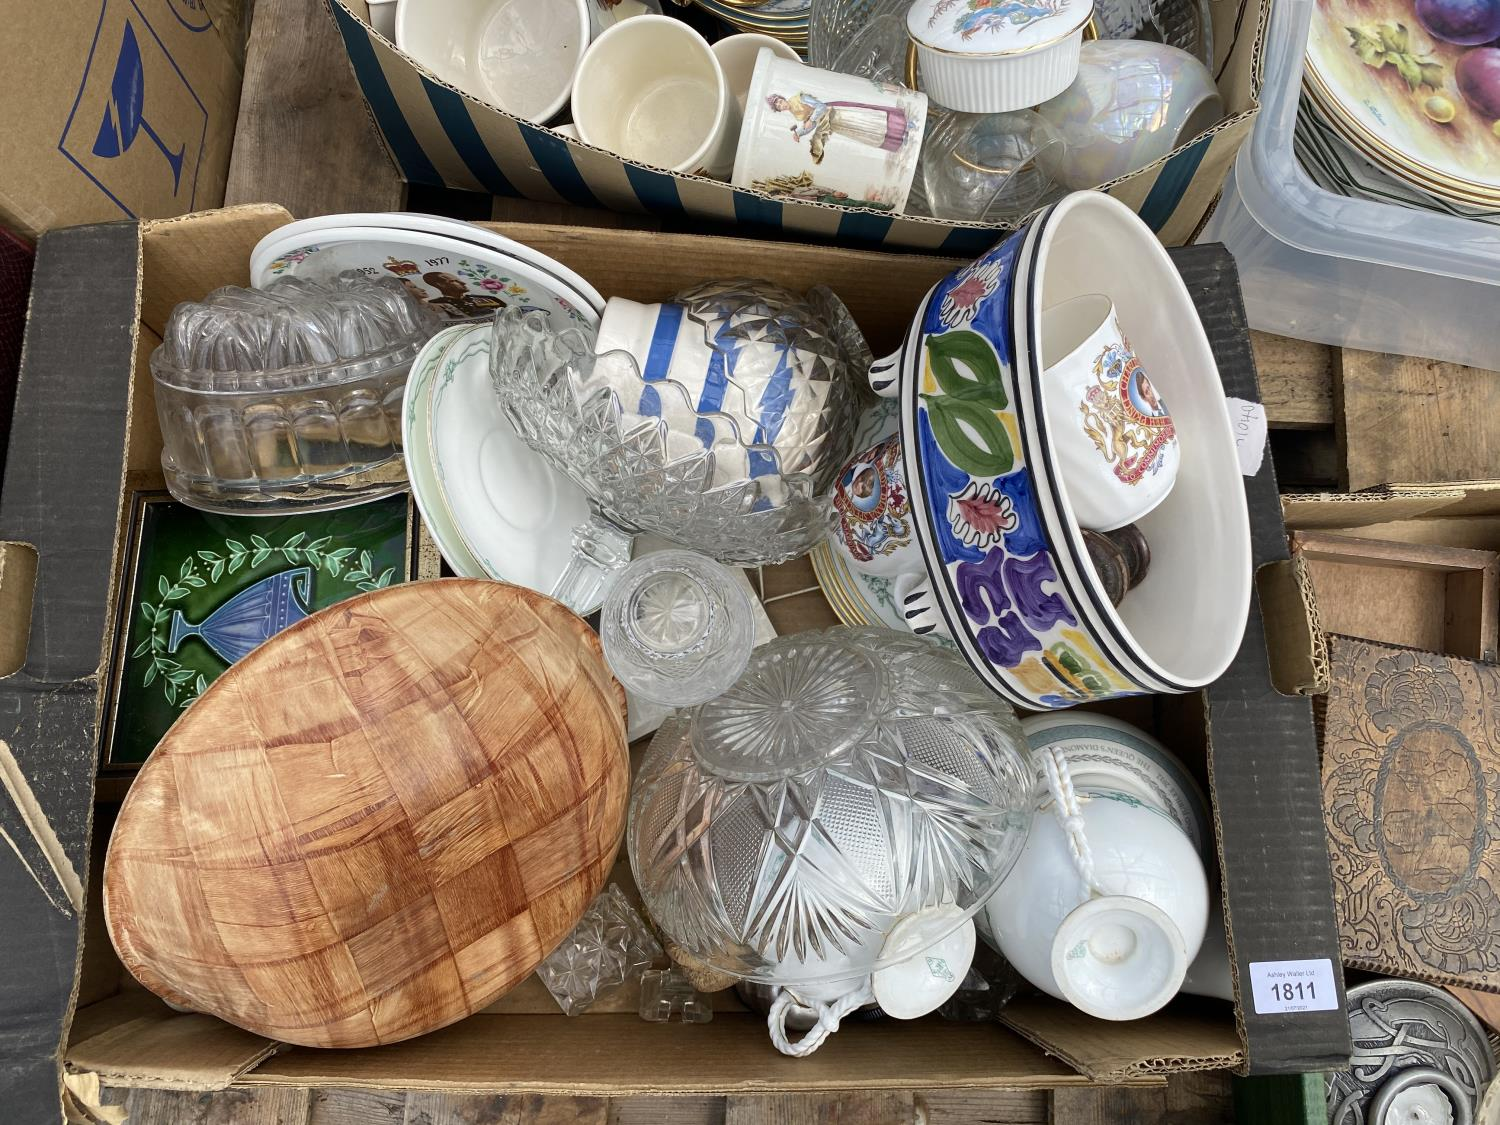 AN ASSORTMENT OF HOUSEHOLD CLEARANCE ITEMS TO INCLUDE CERAMICS, TREEN ITEMS AND GLASS WARE ETC - Image 4 of 6